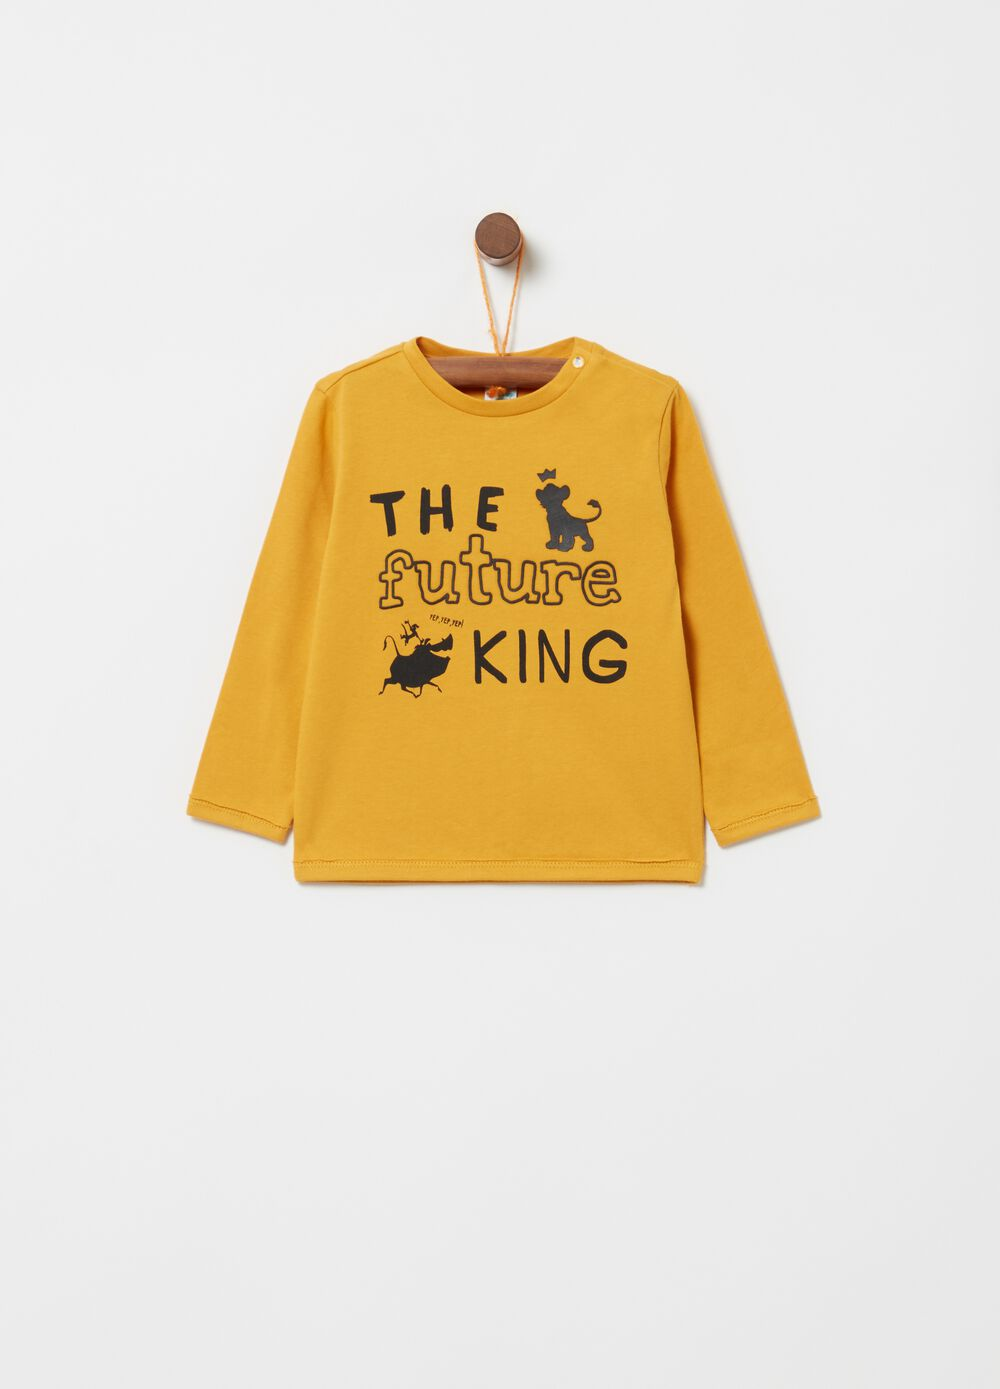 T-shirt in 100% cotton with Lion King print